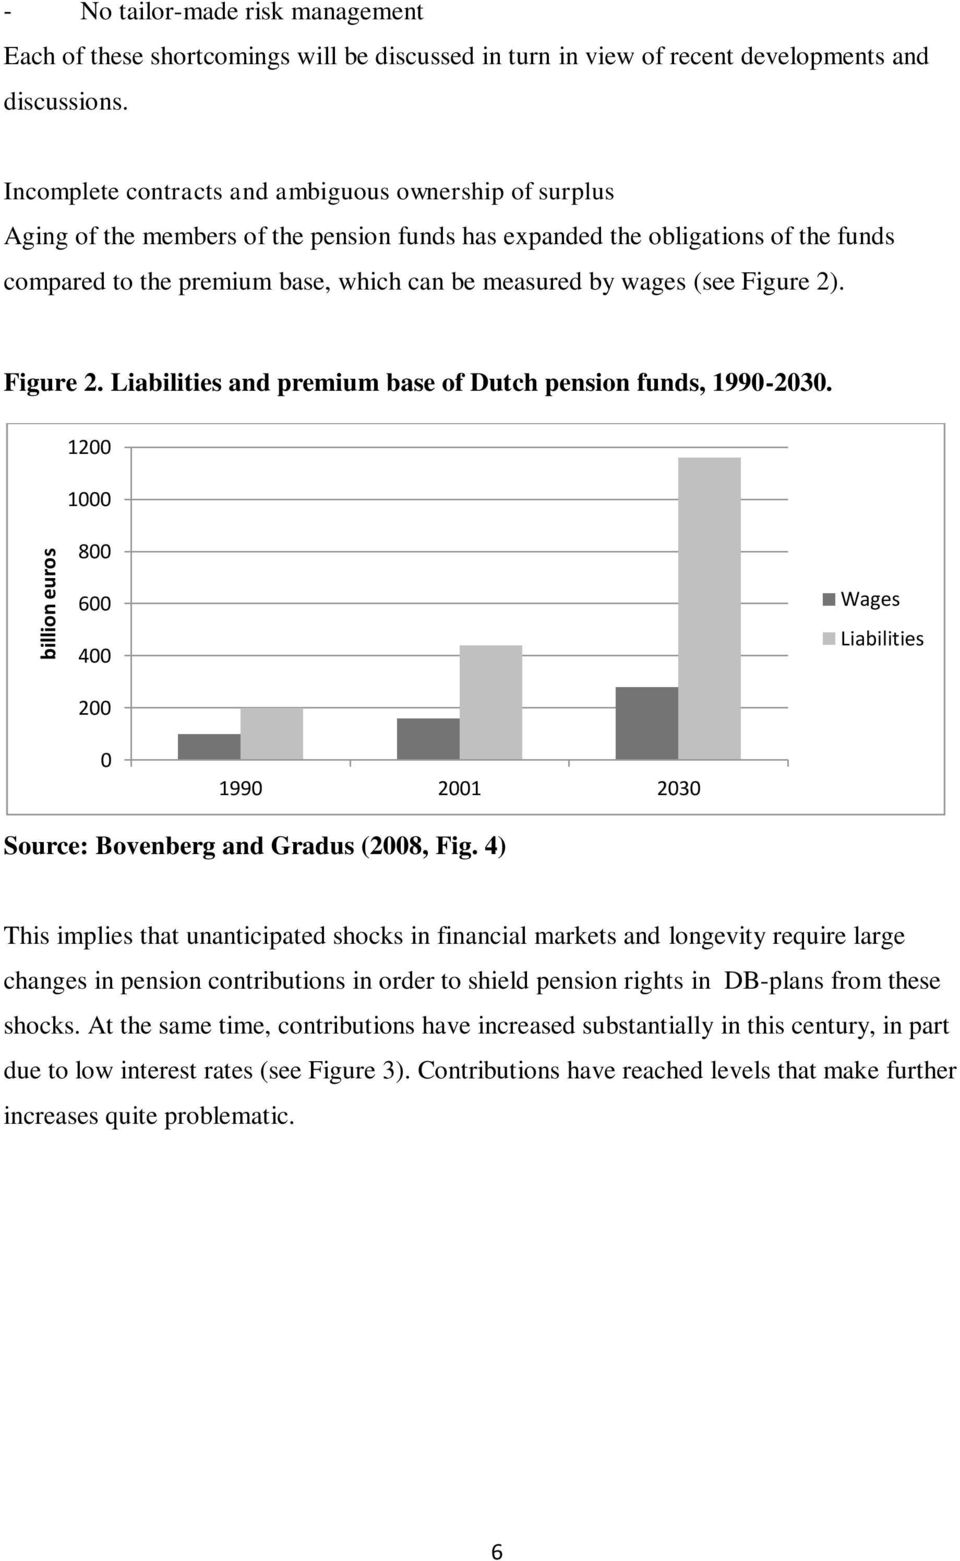 wages (see Figure 2). Figure 2. Liabilities and premium base of Dutch pension funds, 1990-2030. 1200 1000 800 600 400 Wages Liabilities 200 0 1990 2001 2030 Source: Bovenberg and Gradus (2008, Fig.